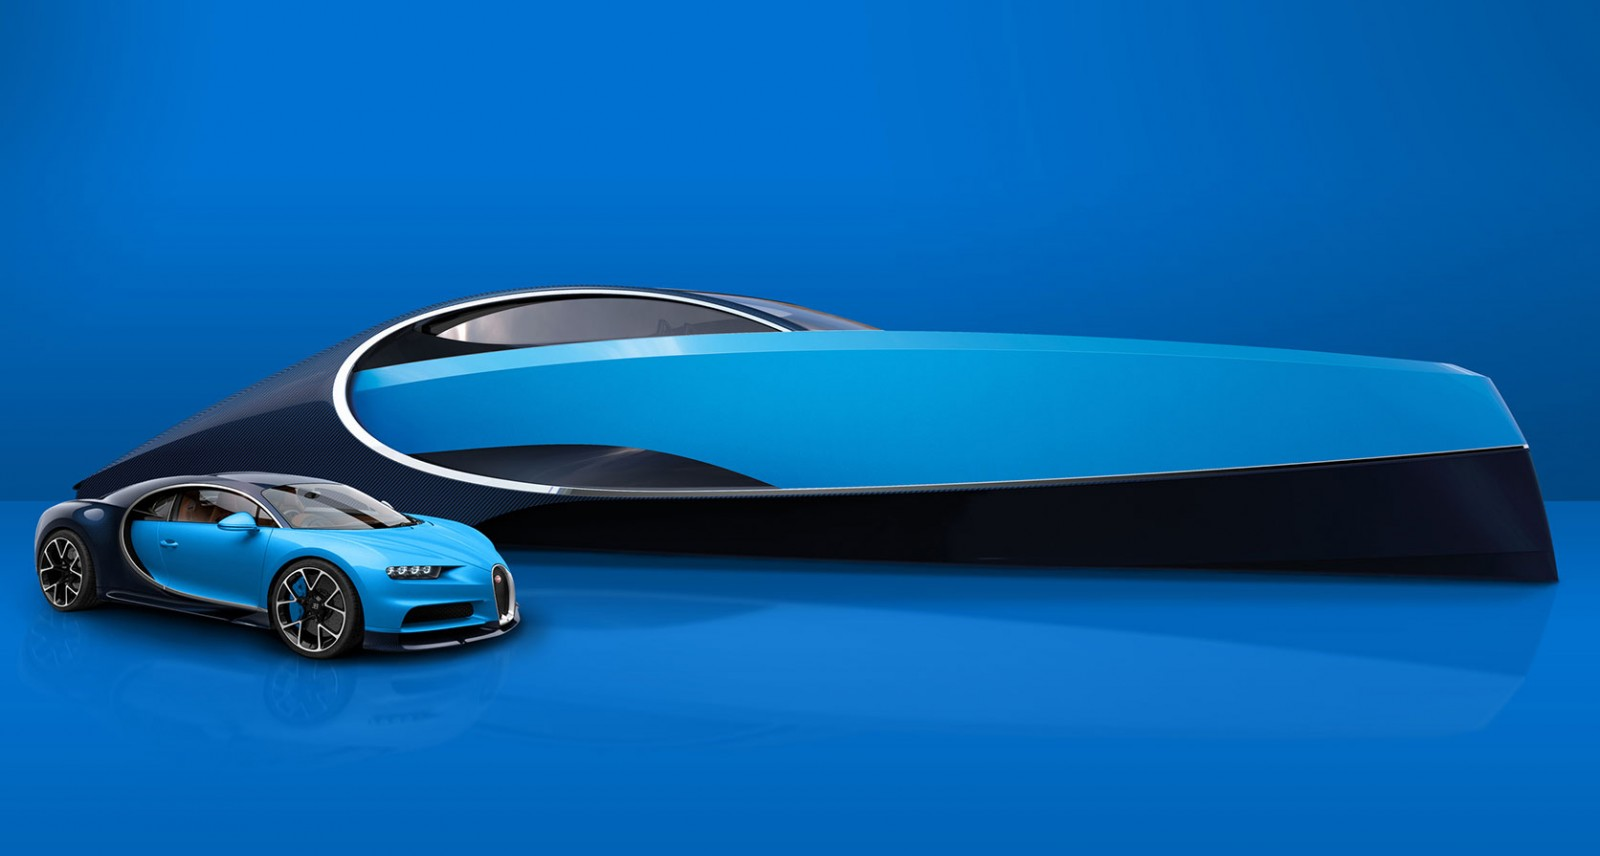 Bugatti Is Now Producing an 1,000-HP, Chiron-Inspired Yacht